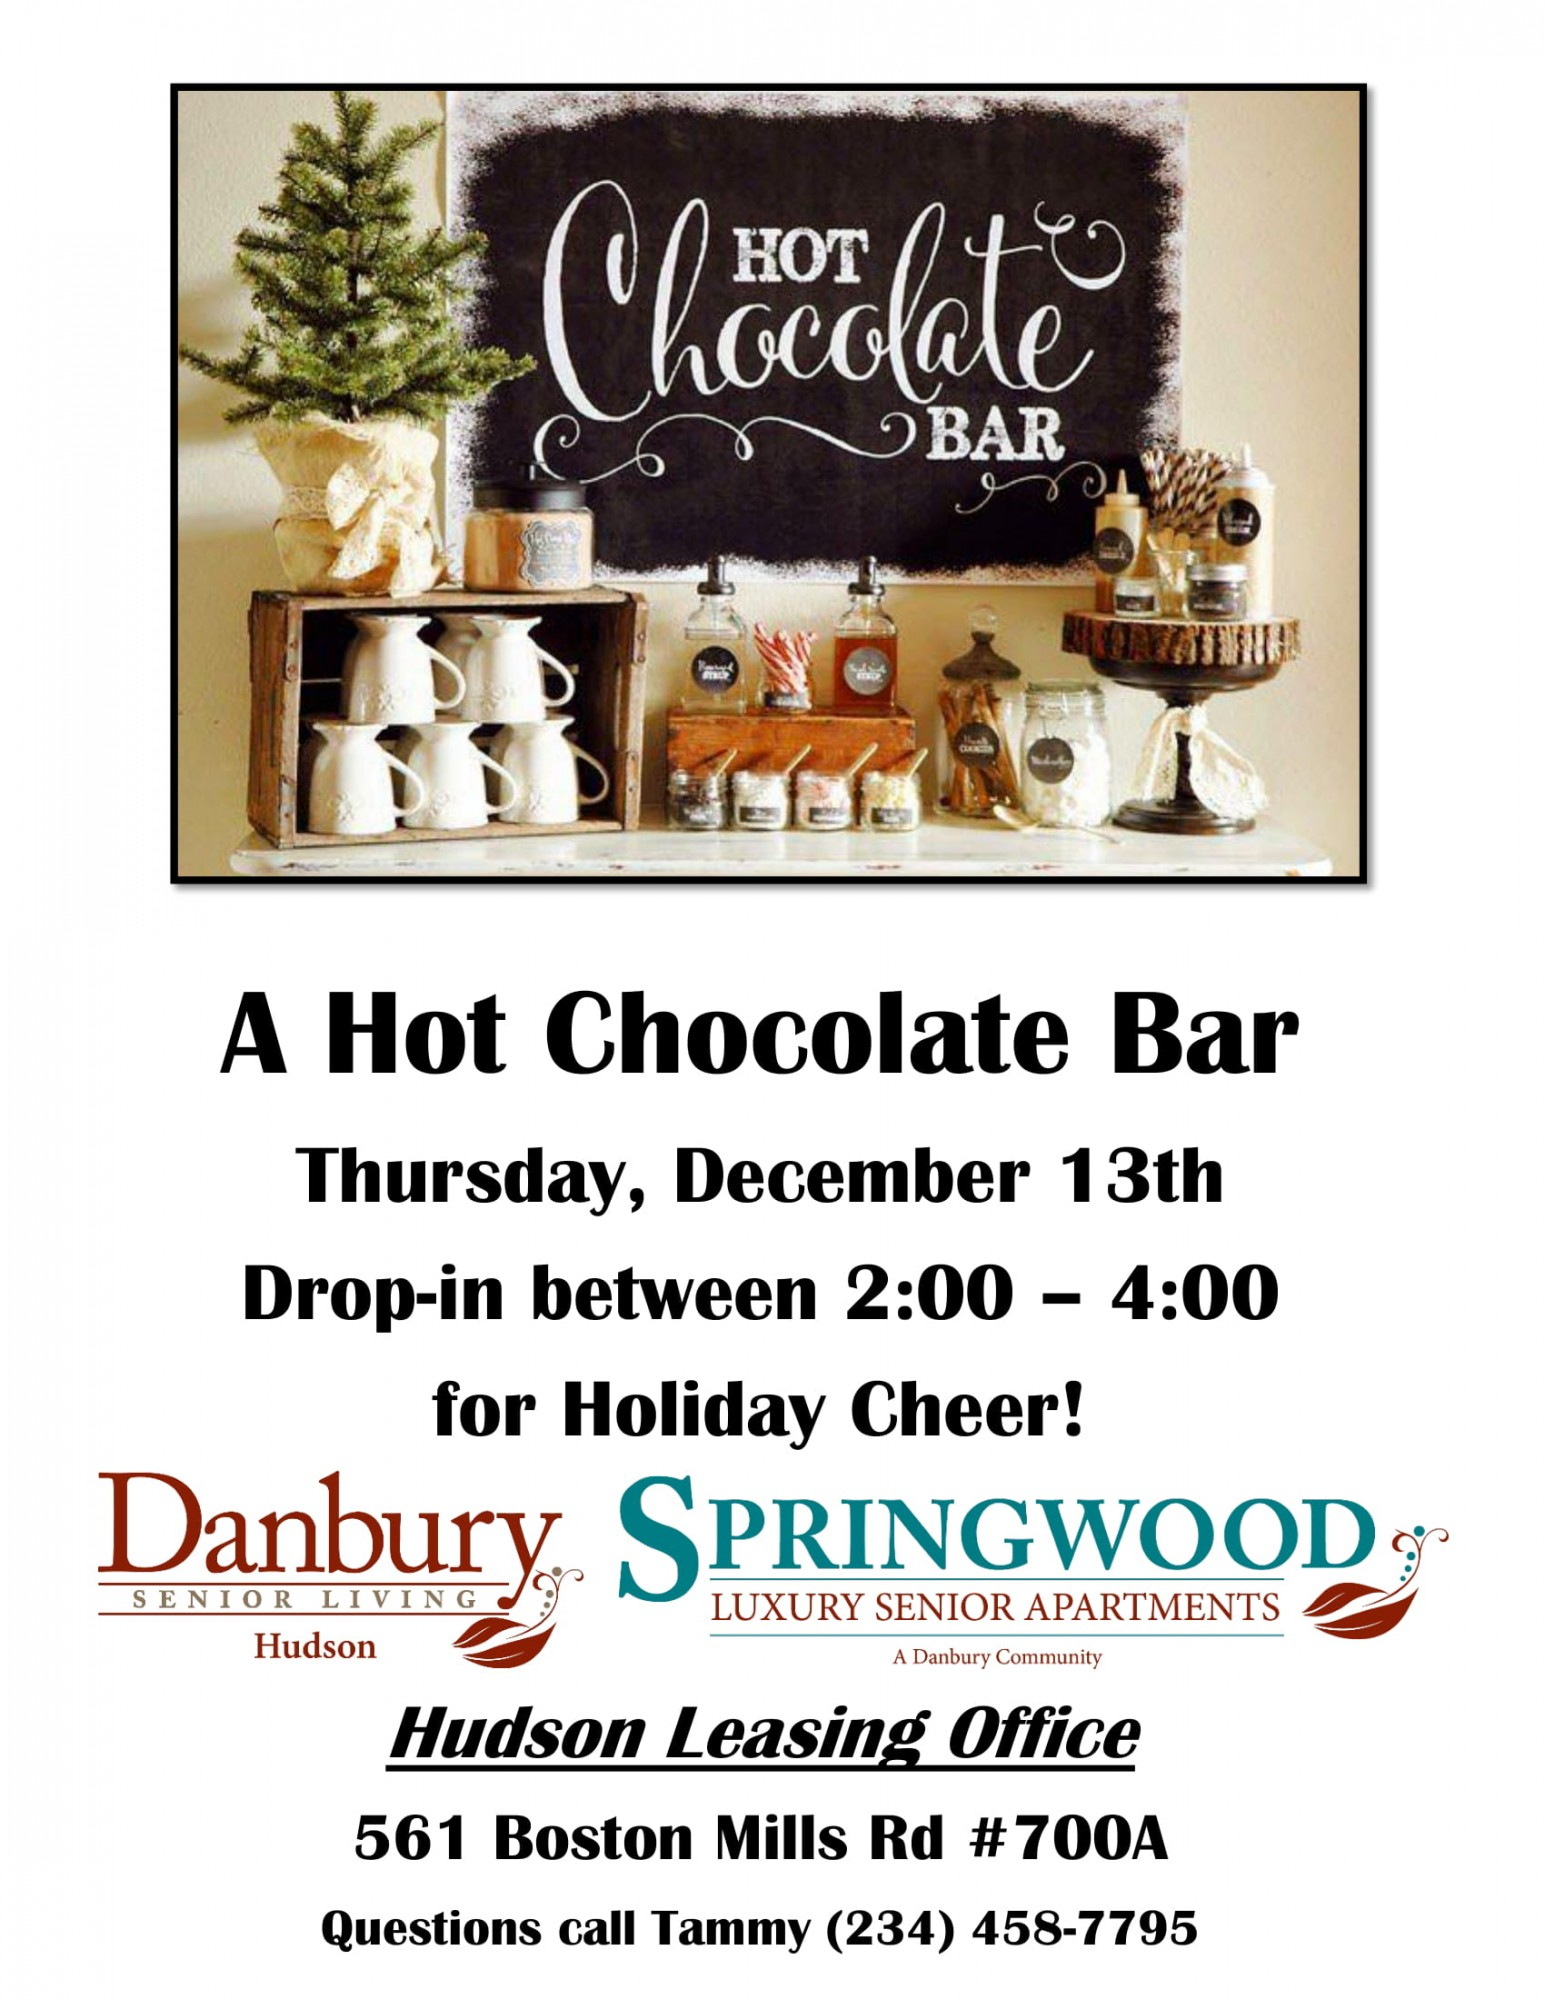 Hot Chocolate Bar Danbury Assisted Living